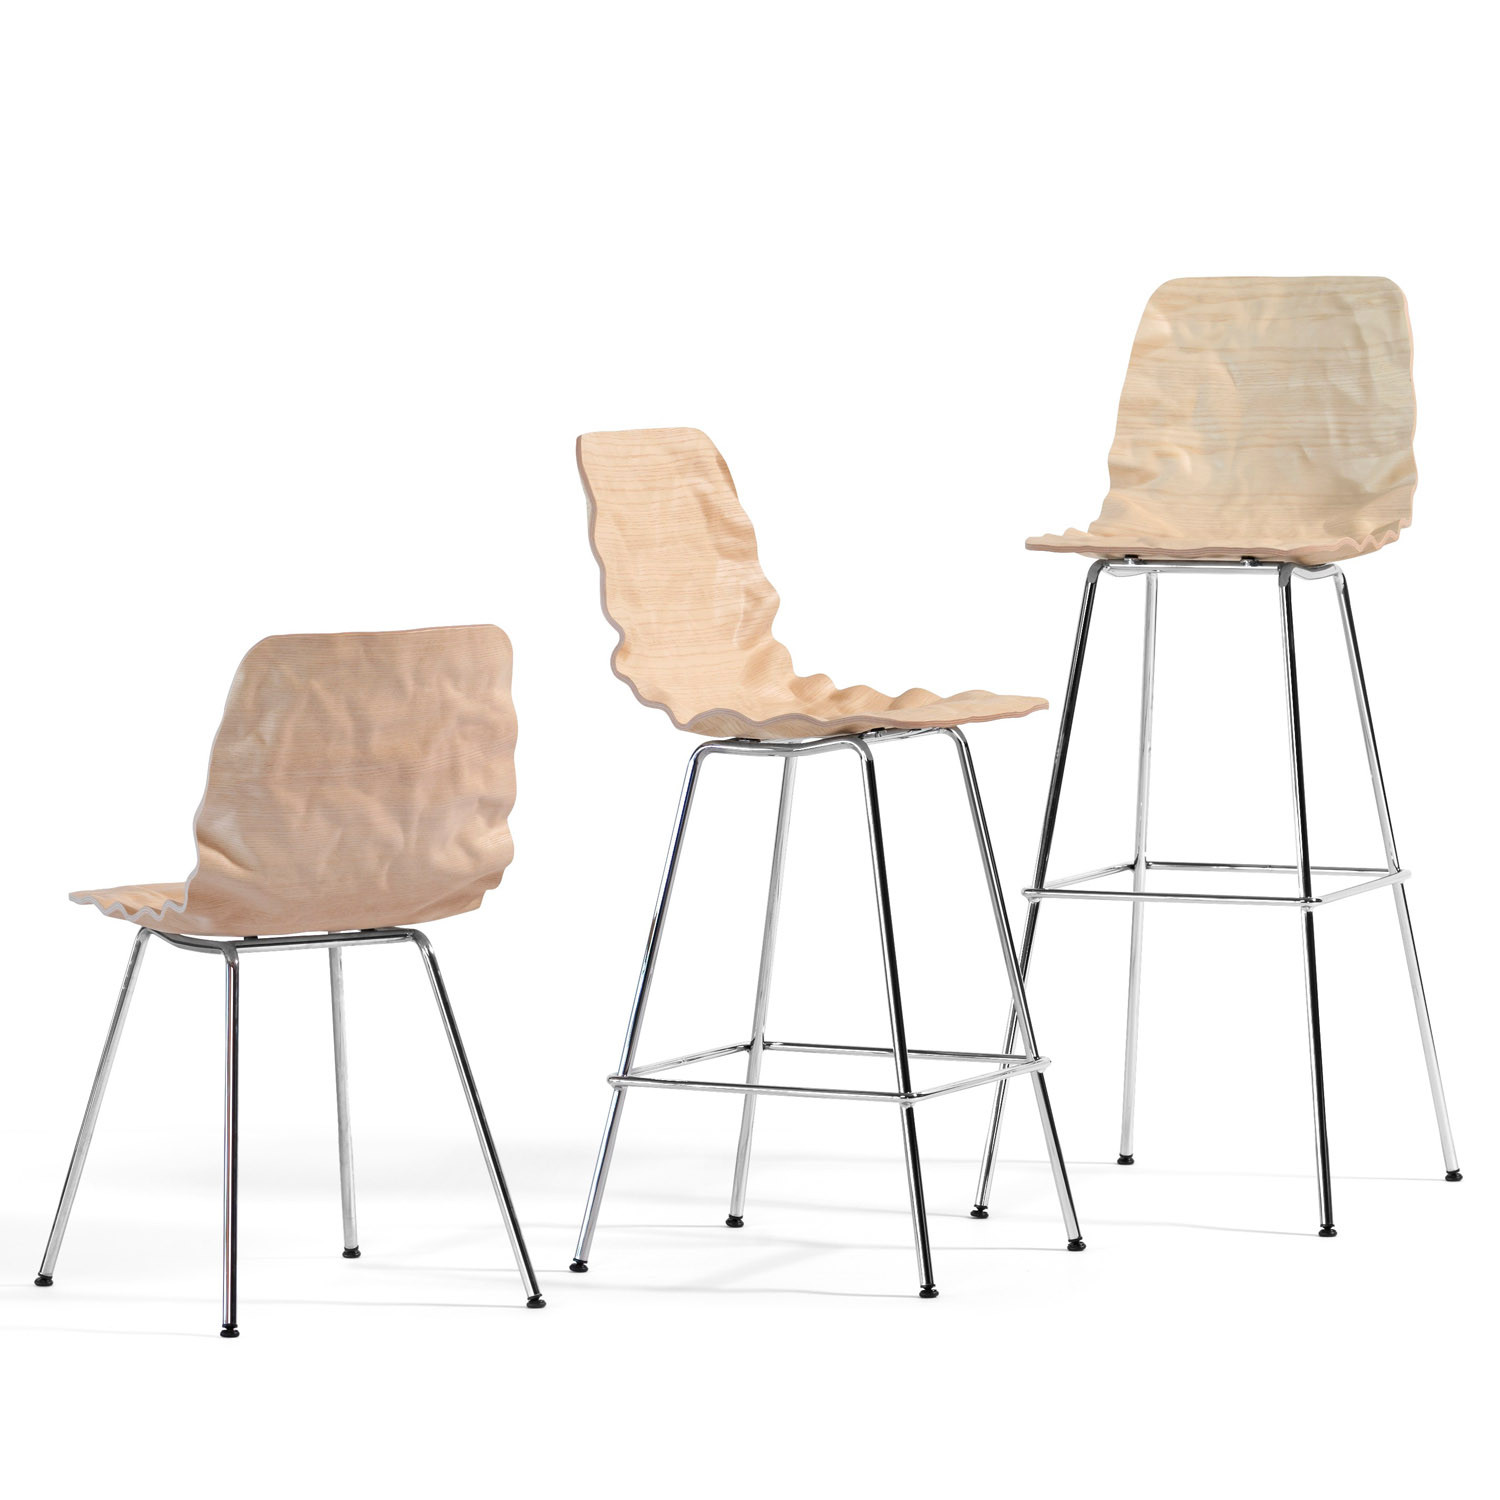 Bla Station Dent Chair and Bar Stools